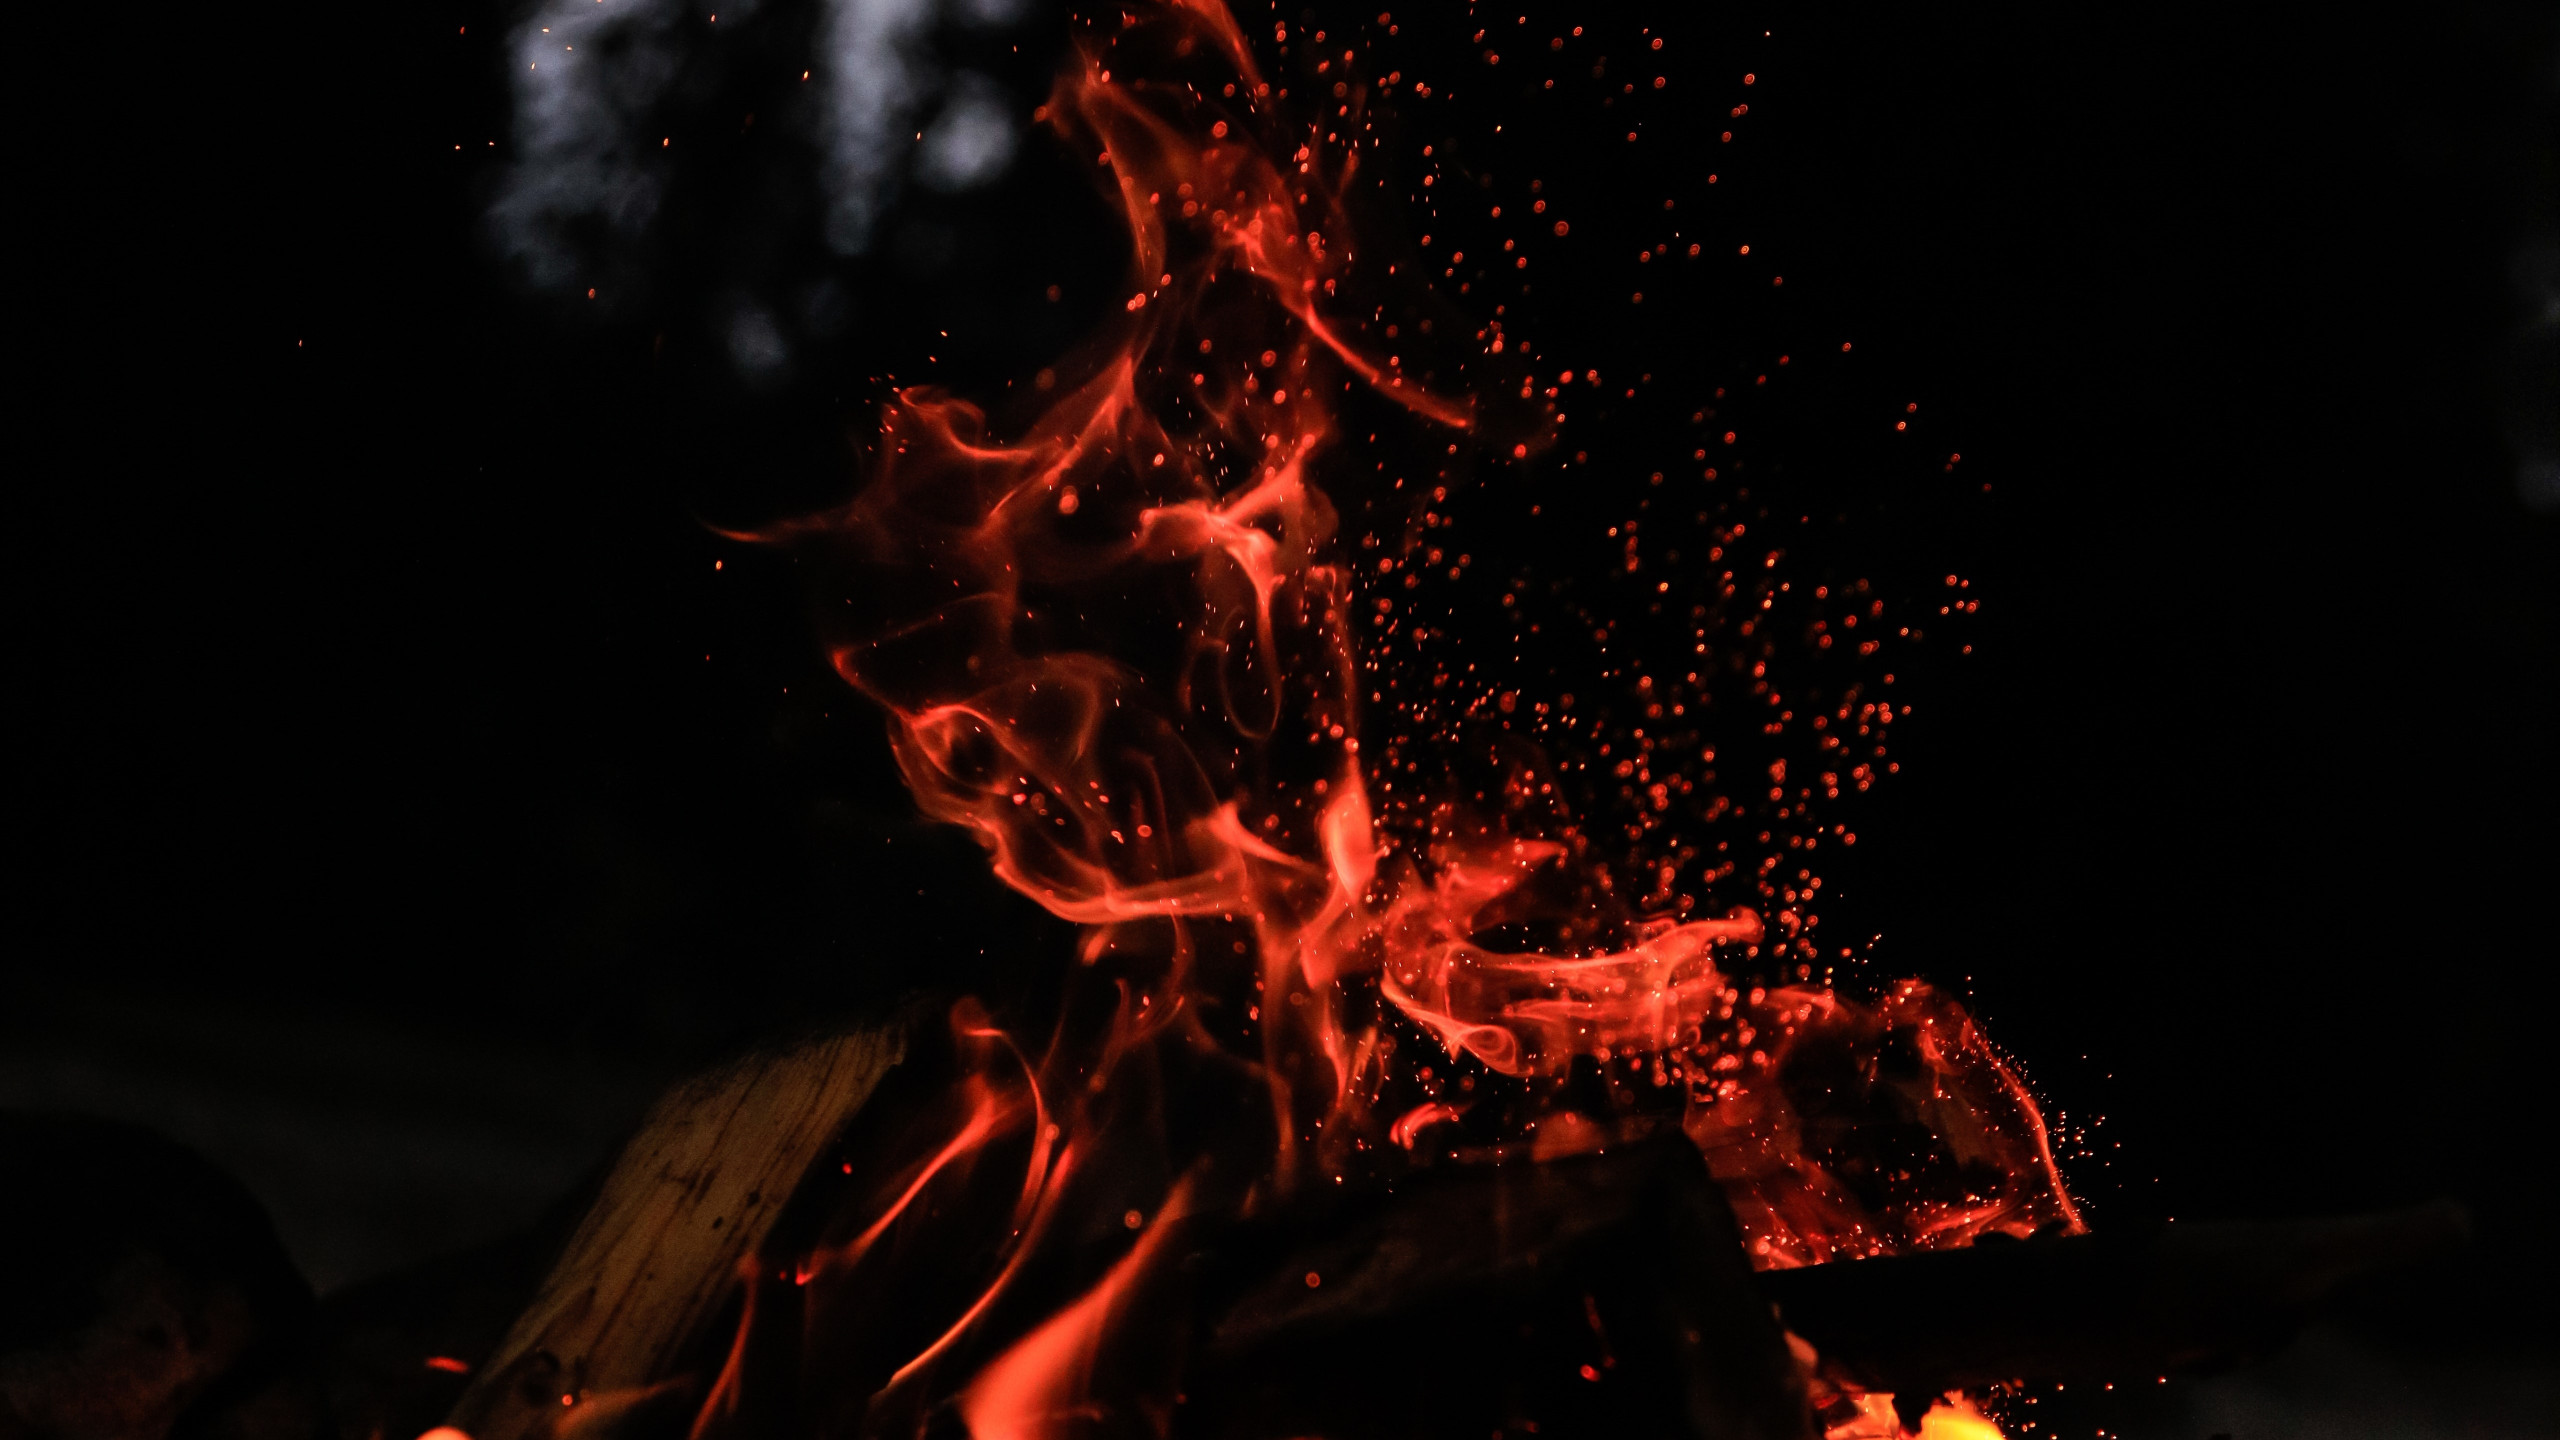 fire in the cold night 2560x1440 wallpaper download link